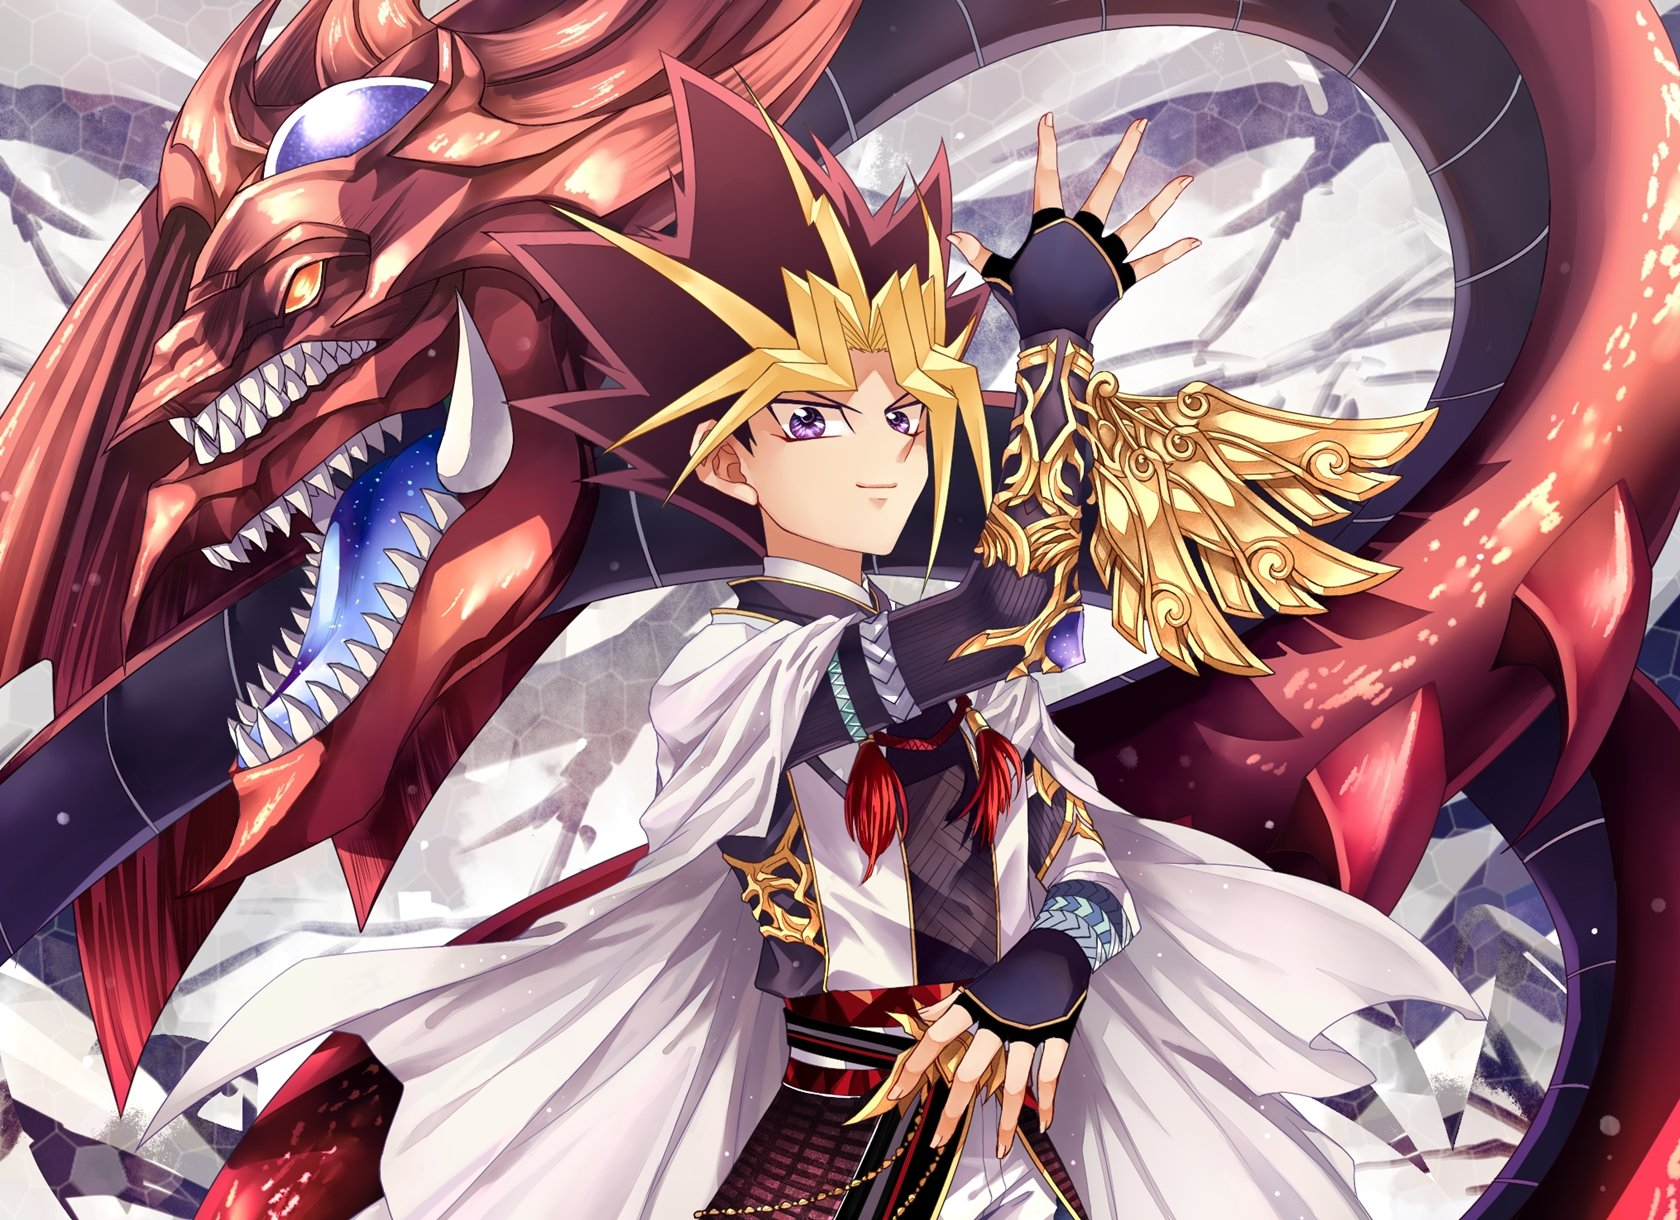 Yu Gi Oh Yami Yugi Slifer The Sky Dragon Looking Ahead wallpaper 1680x1220